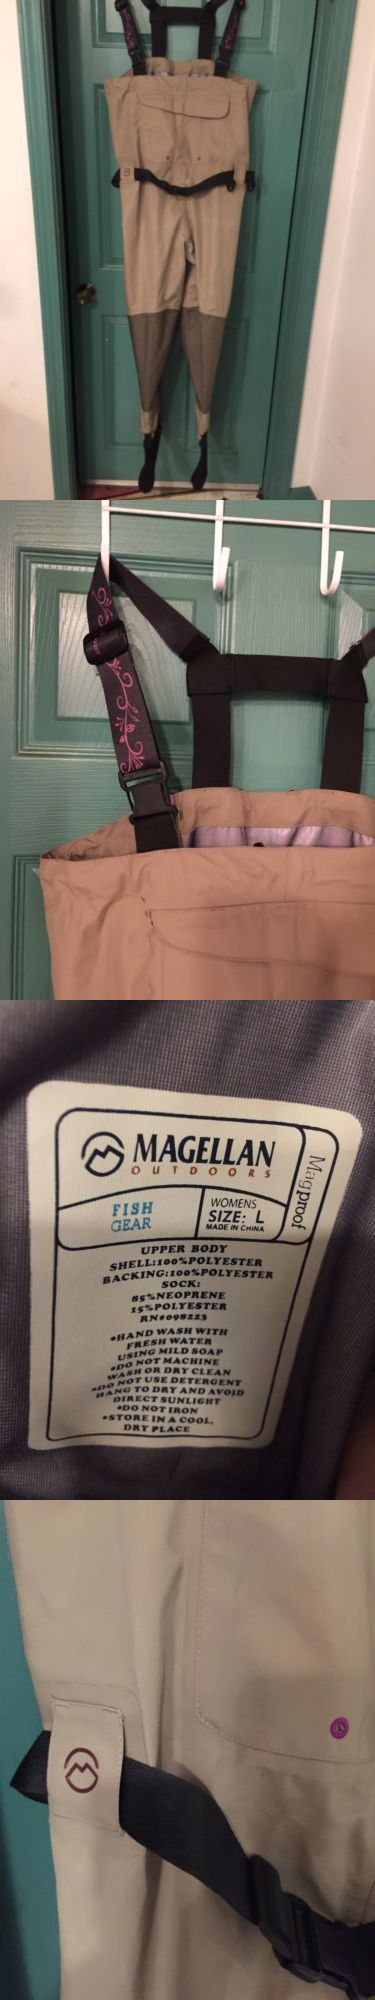 Waders 179984: Magellan Outdoors Fish Gear Stoking Foot Wader Women S Size Large -> BUY IT NOW ONLY: $69.95 on eBay!